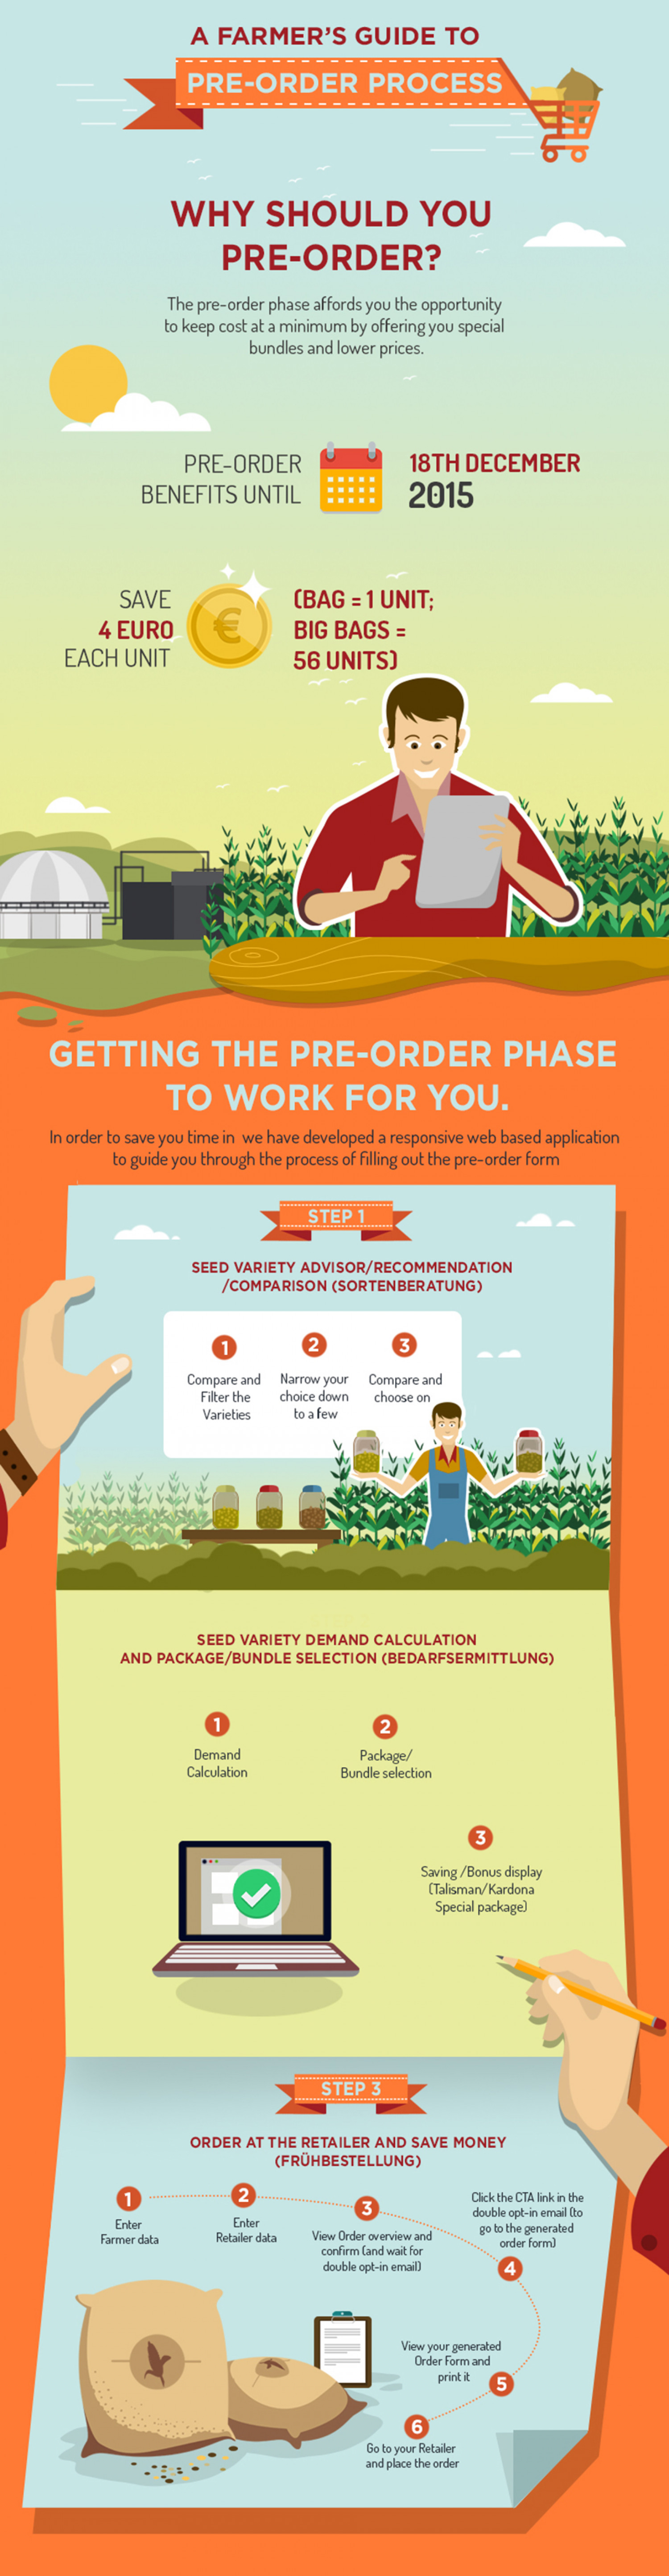 A Farmer Guide to pre - order process Infographic